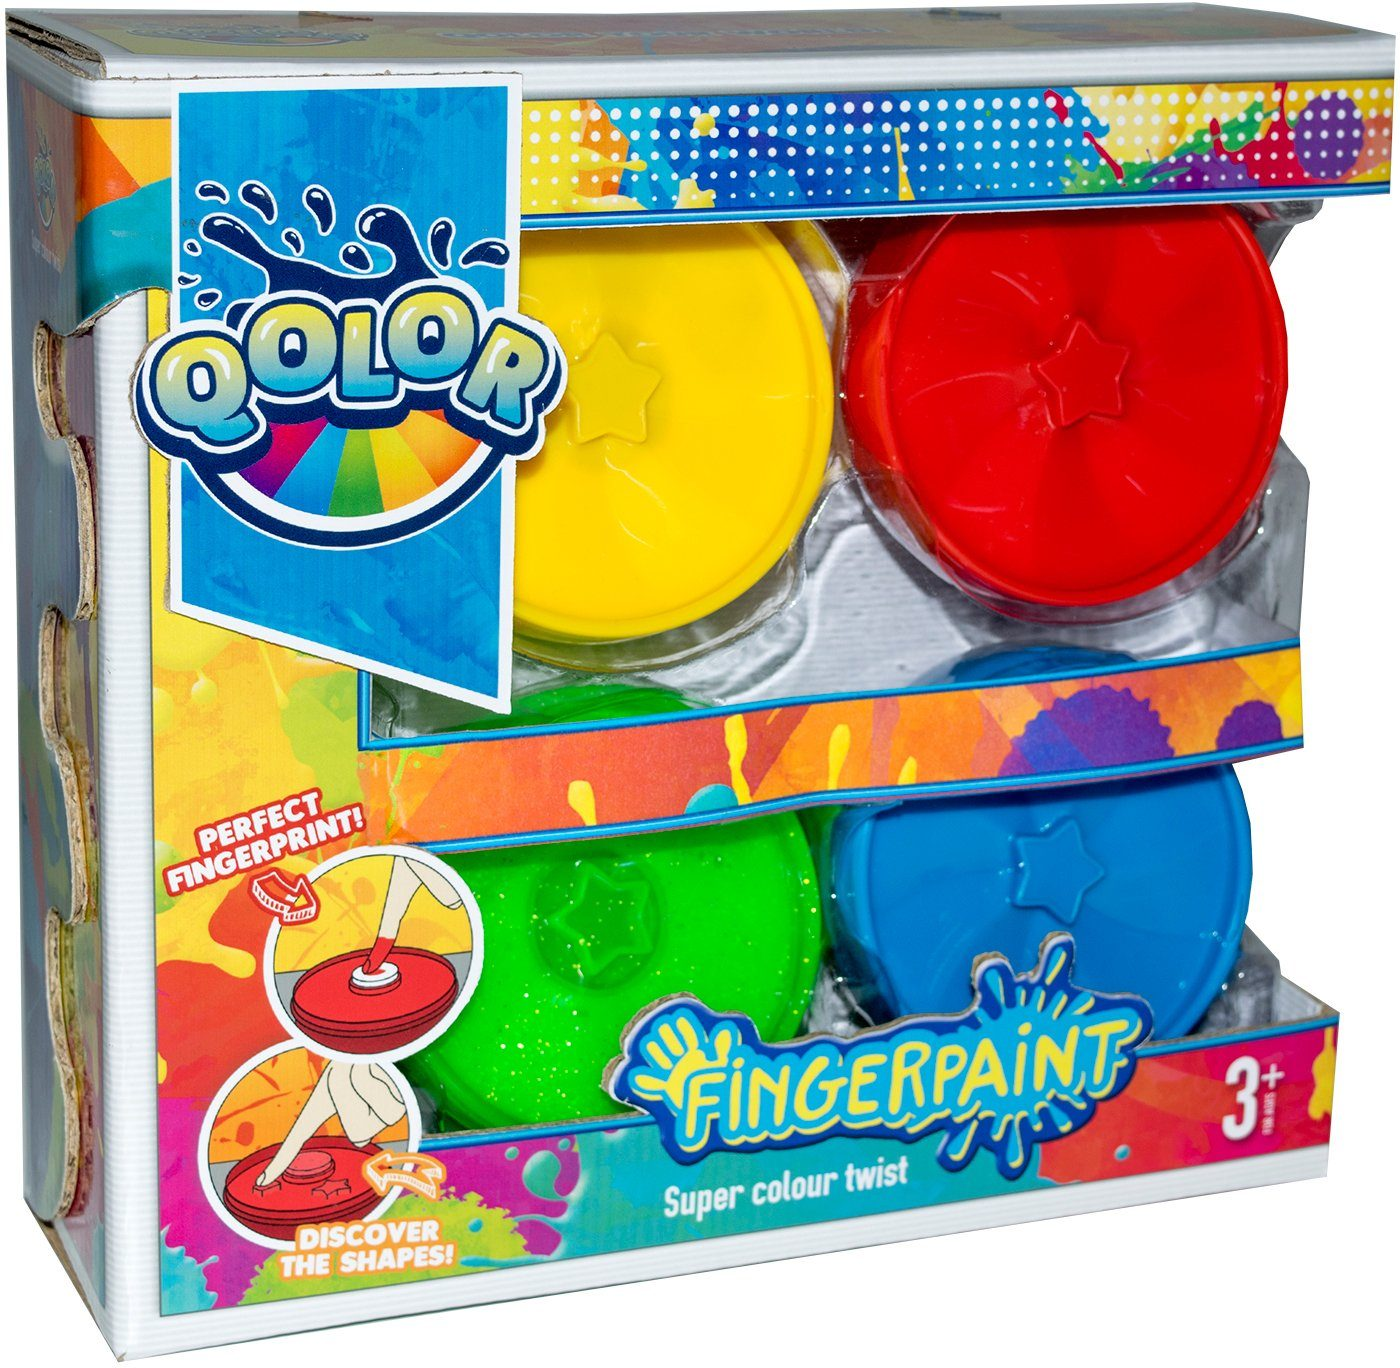 Fingerfarben Set, »Qolor Fingerpaint Super colour twist«